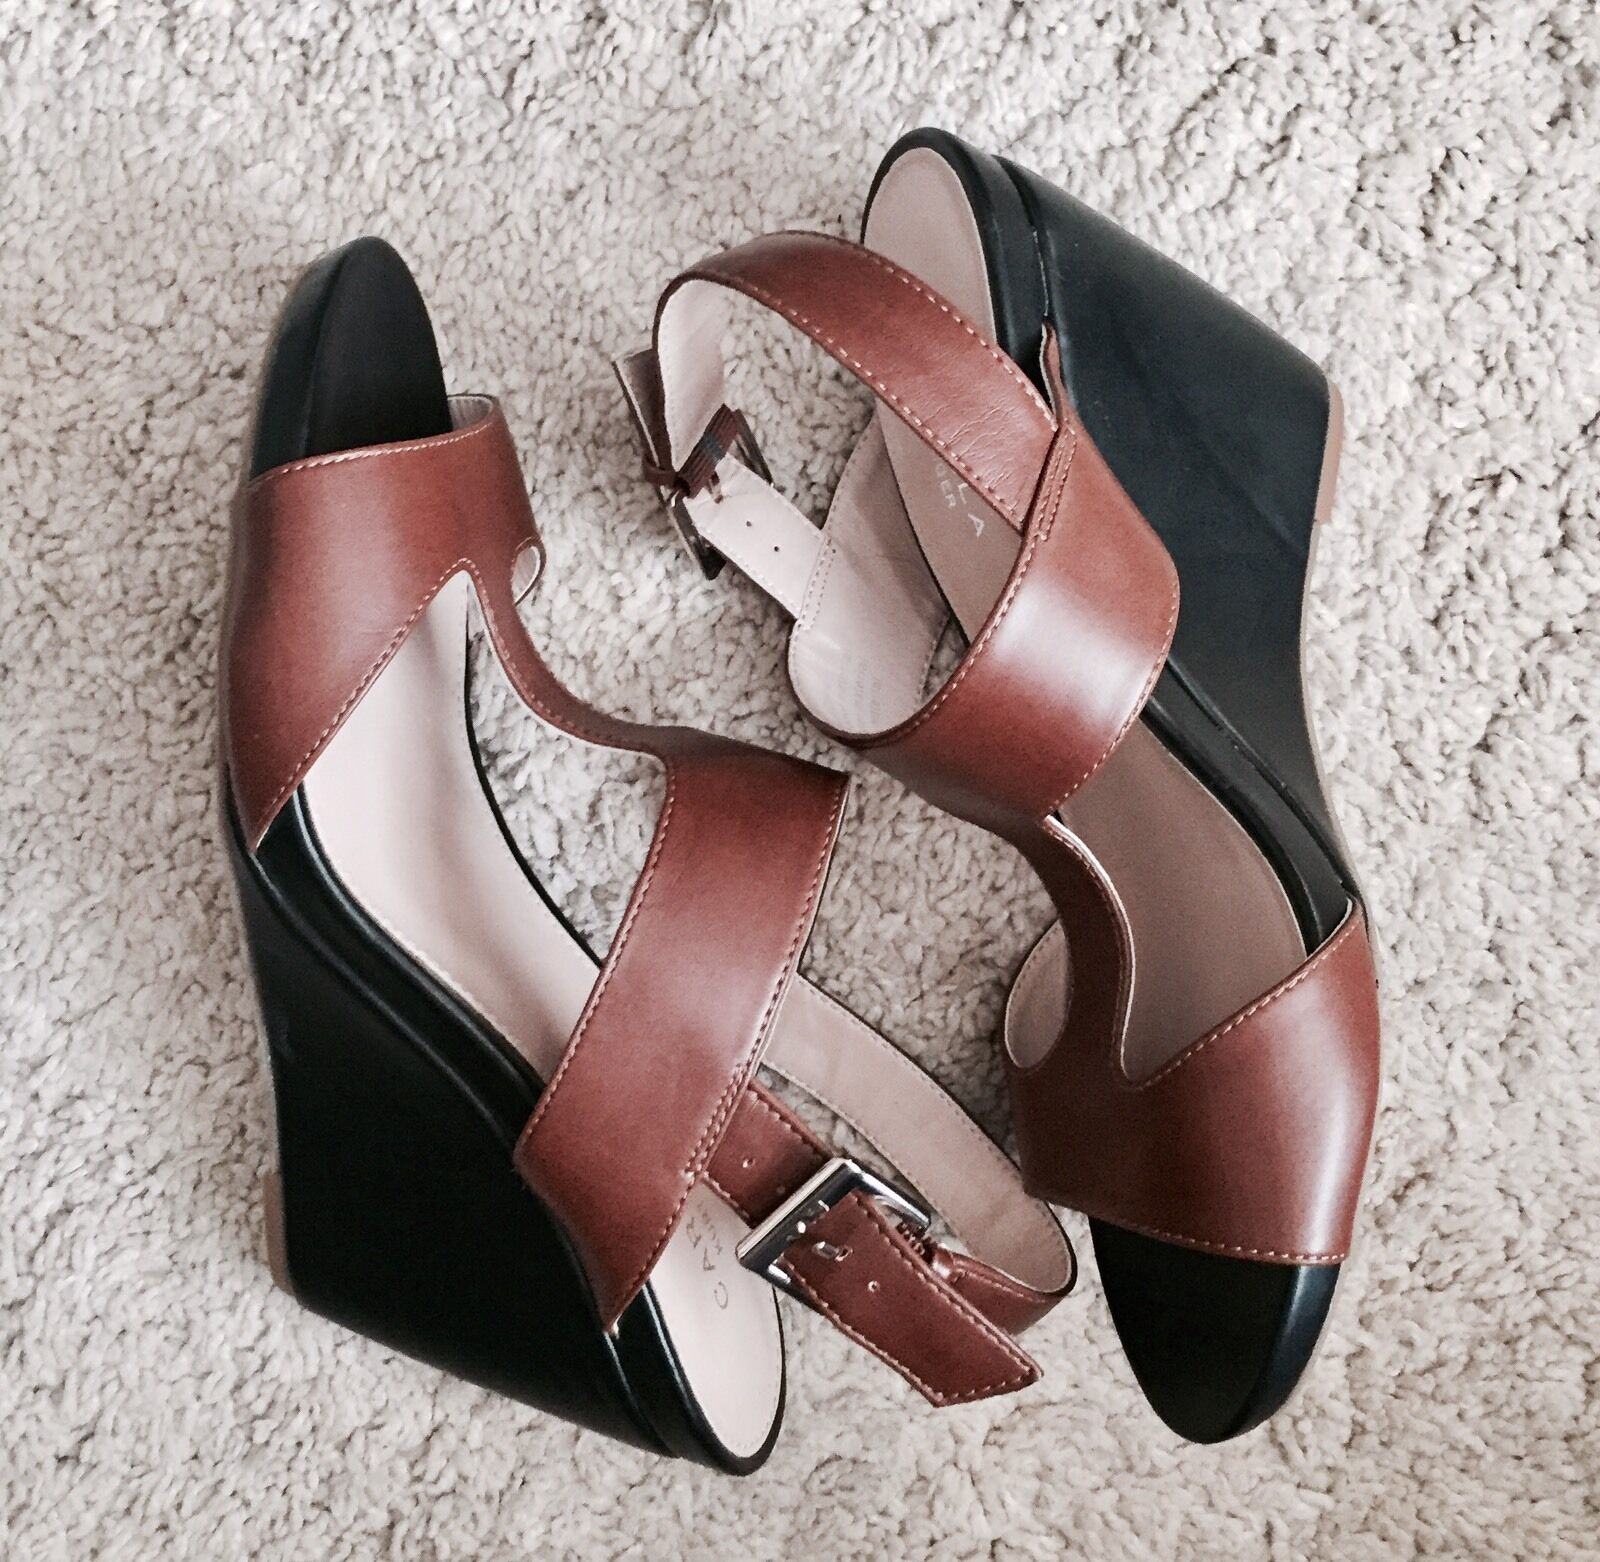 Carvela Brown & Black Platform Wedges Heels Sandals     Size 6 39 992f4f